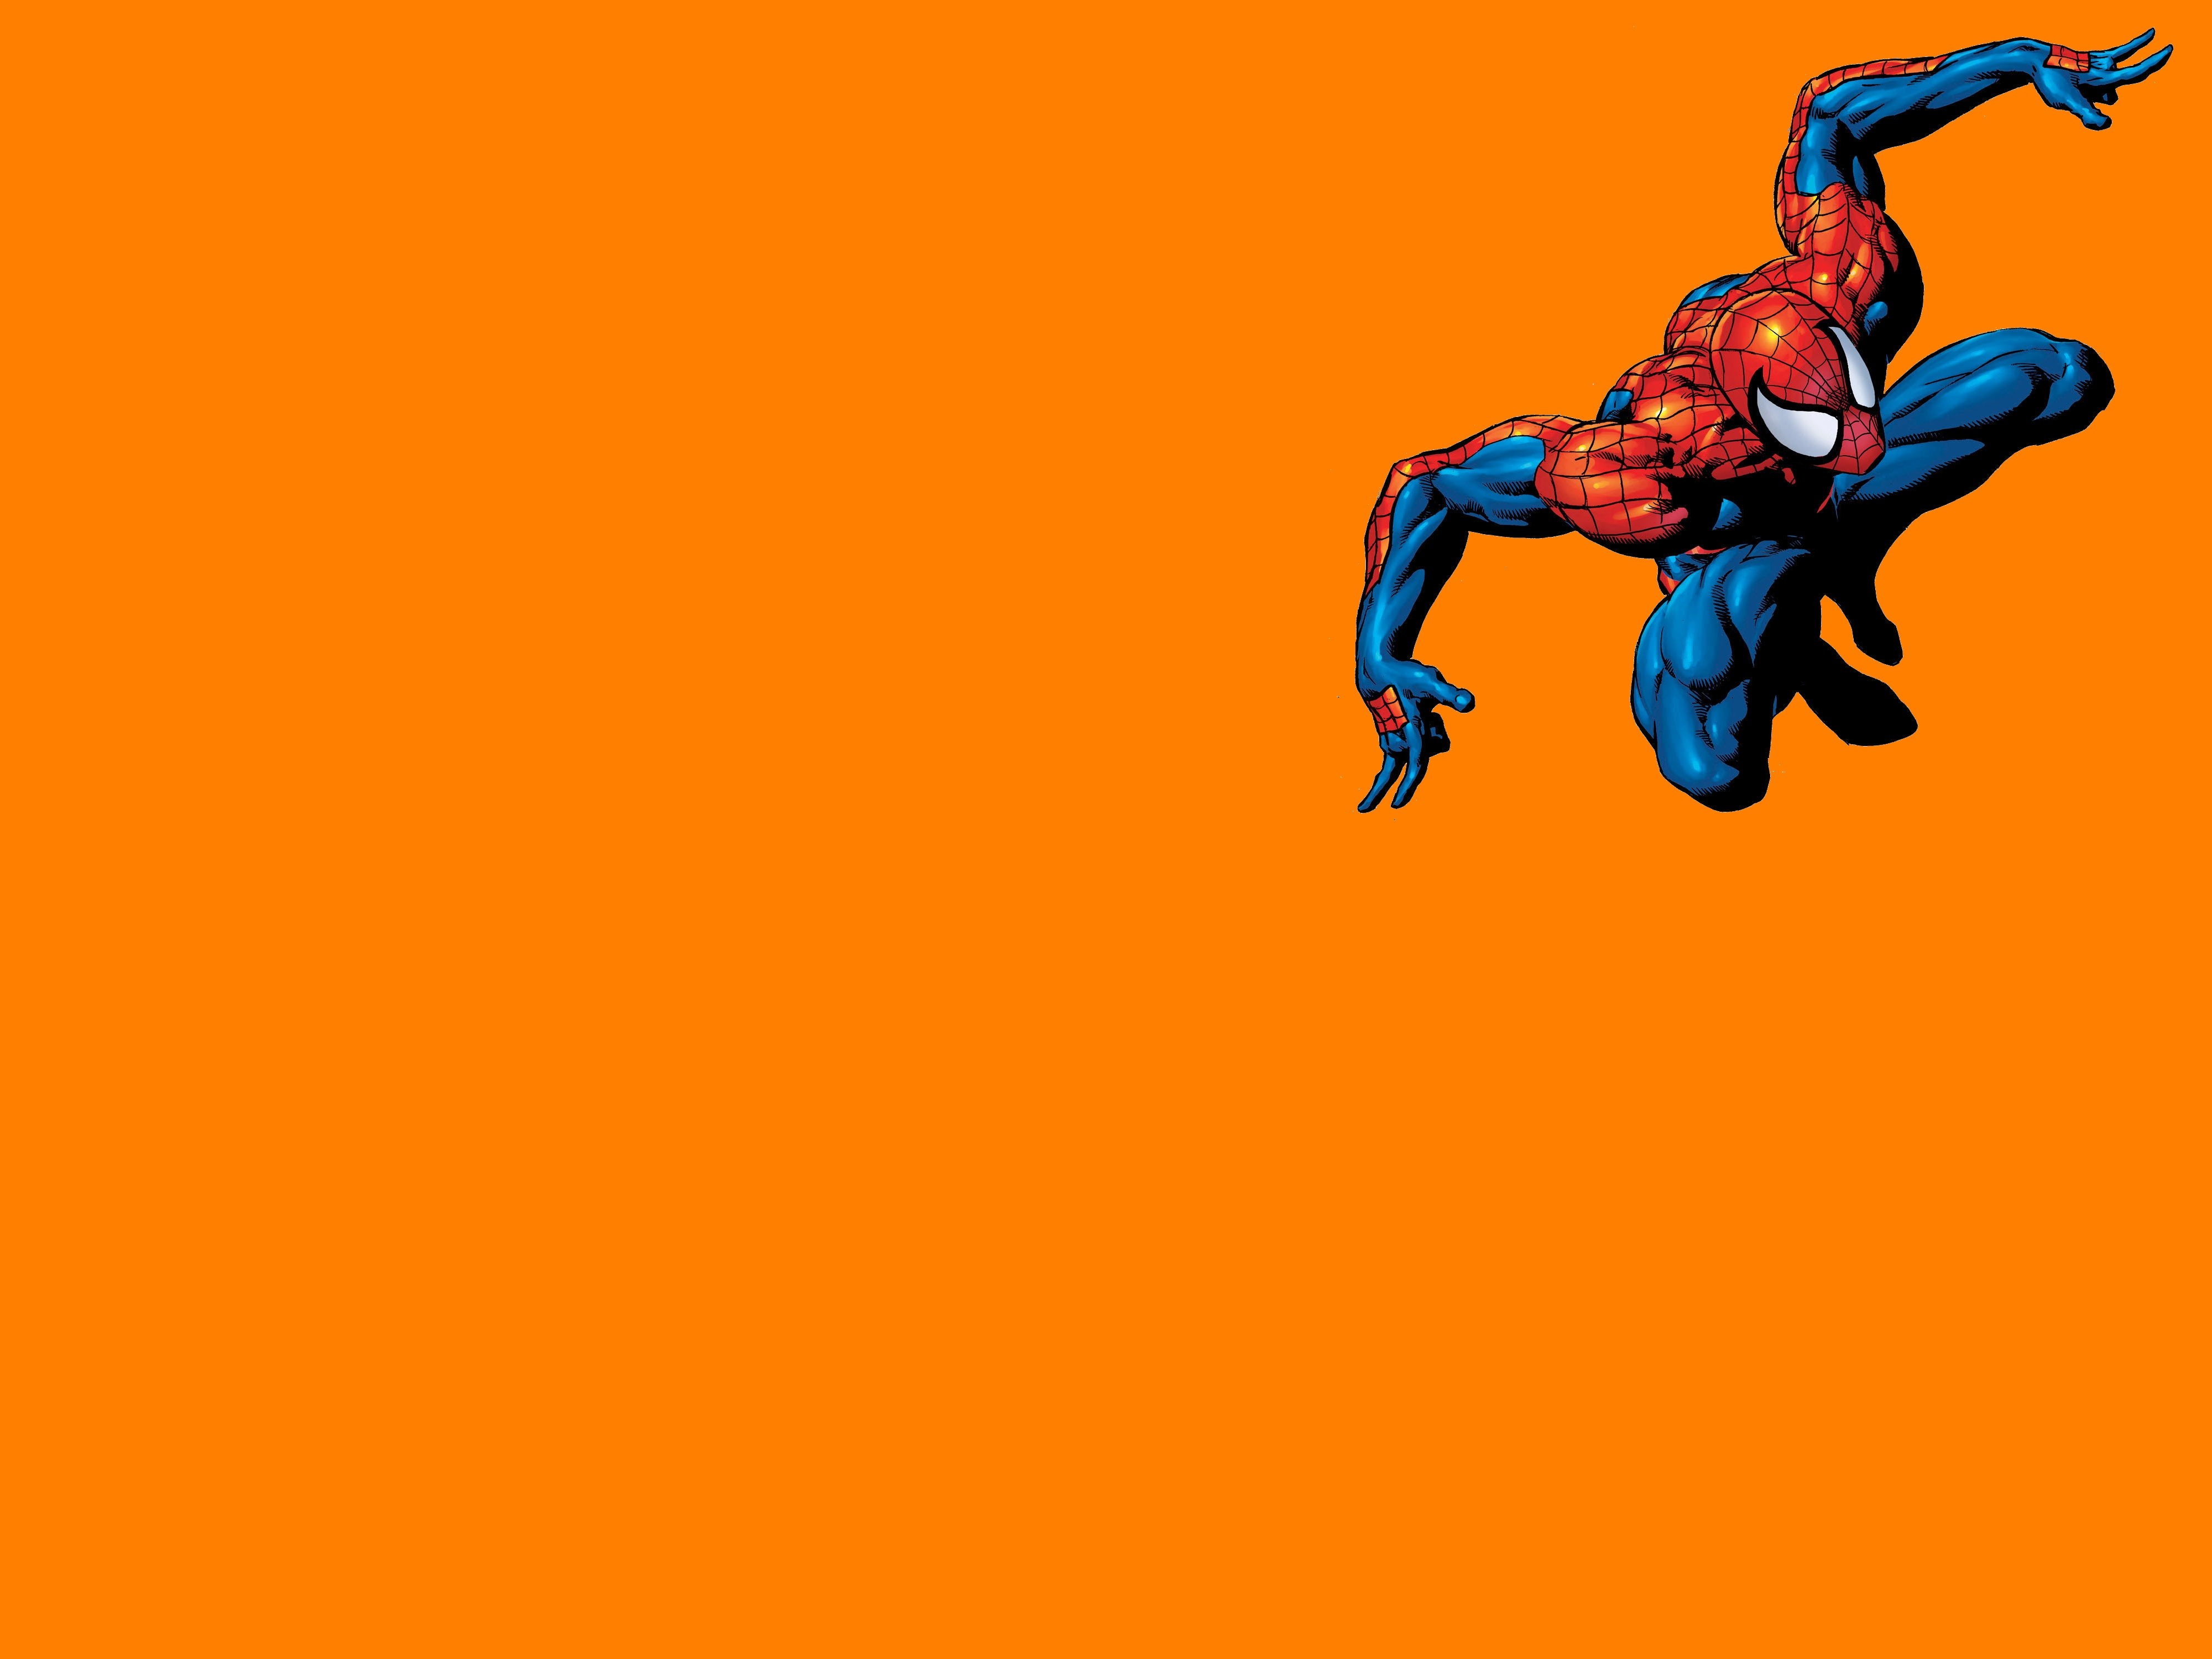 3d Animated Wallpaper For Windows 7 Ultimate Free Download Spider Man 4k Ultra Hd Wallpaper Background Image